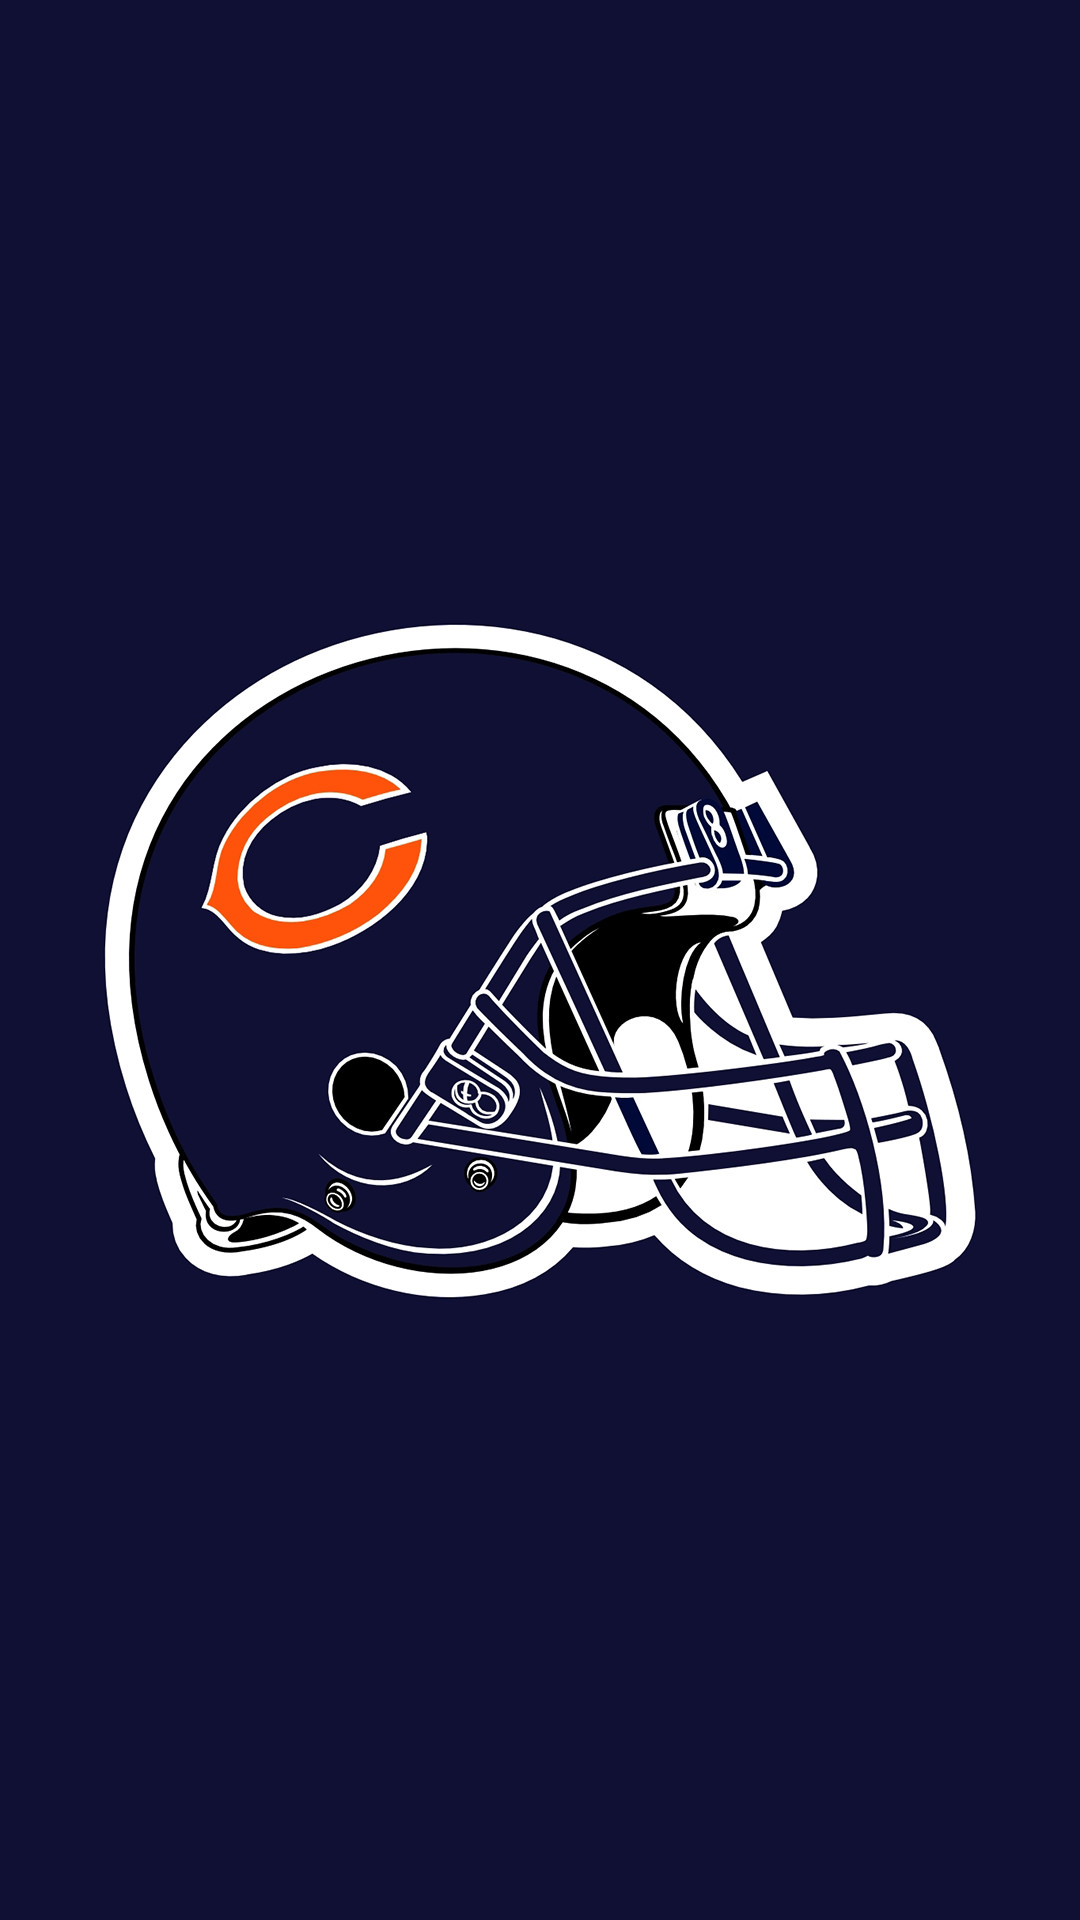 1080x1920 Chicago Bears NFL IPHONE WALLPAPER Pinterest Chicago Bears